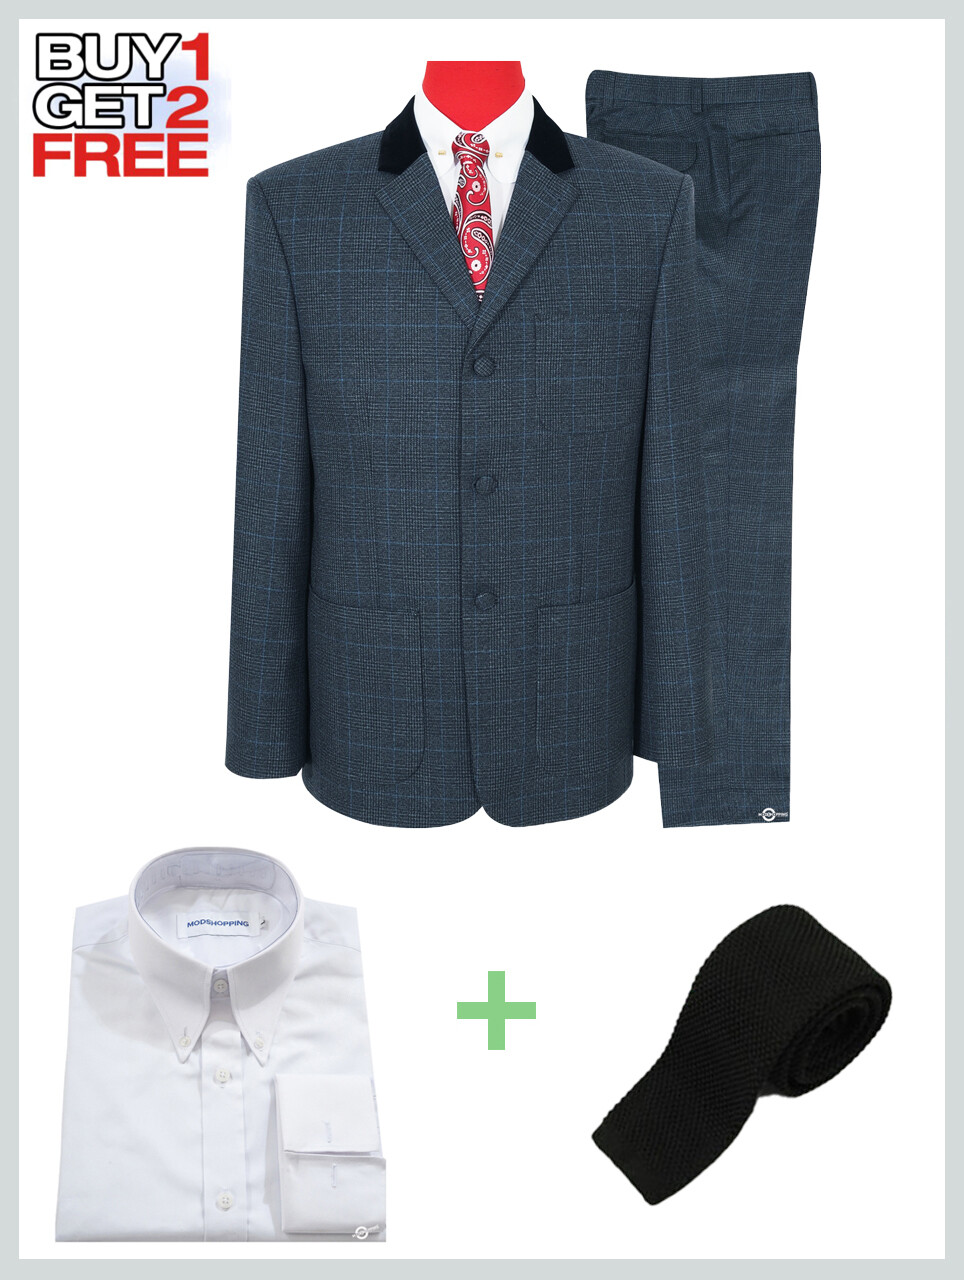 2 Piece Suit Package | Charcoal Grey Tweed Pow Check Suit.